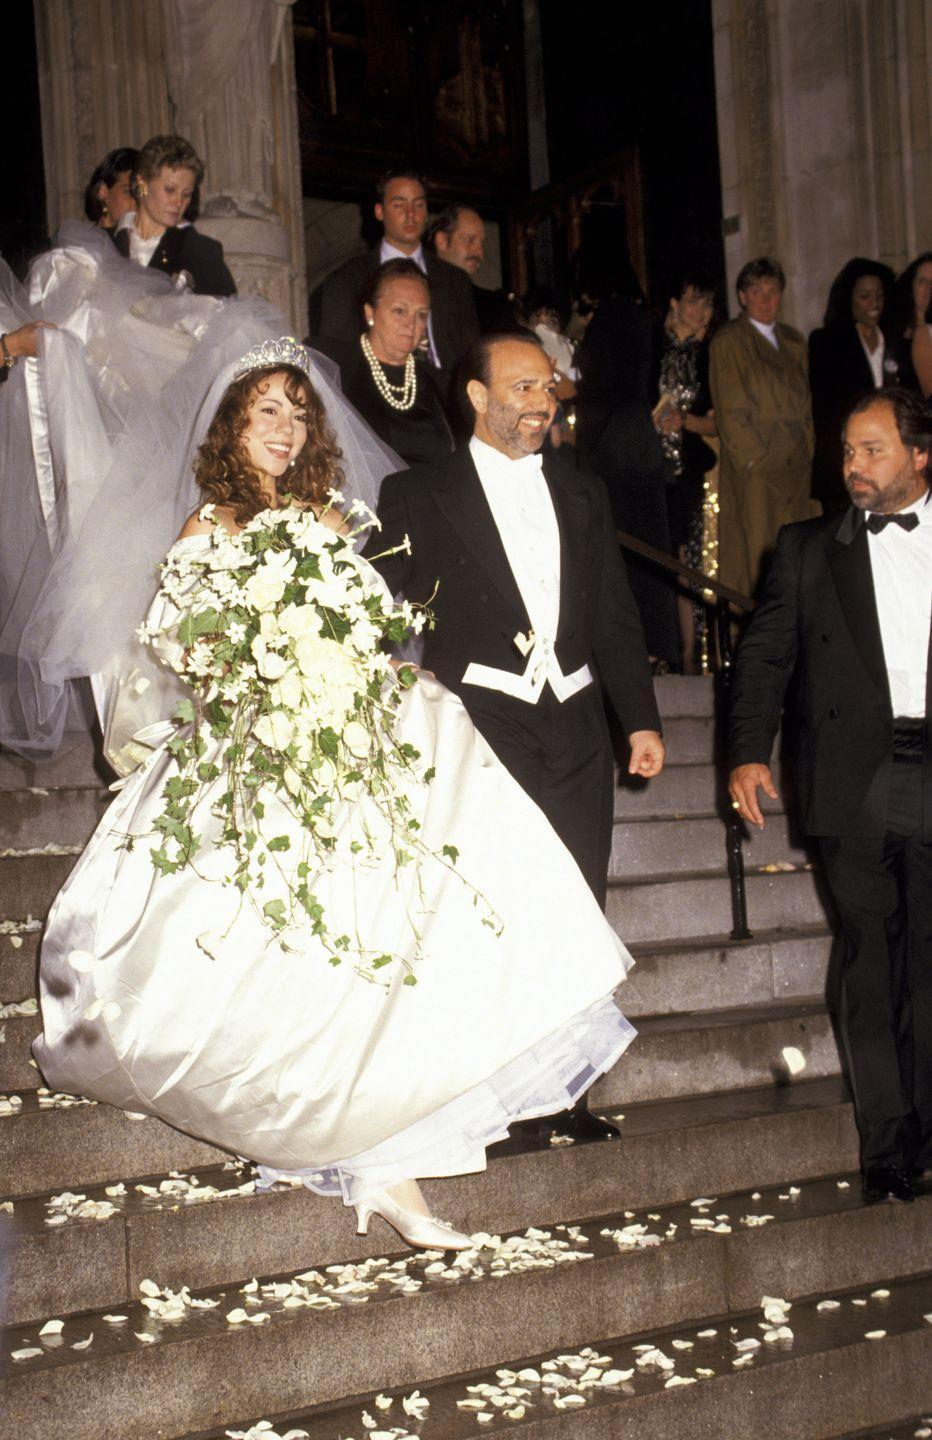 "<p>Mariah Carey married music executive Tommy Mottola on June 5. Carey was 23, and Mottola was 20 years her senior. Carey later described herself to <em><a href=""https://www.cosmopolitan.com/entertainment/celebs/a28137694/mariah-carey-profile-cover-cosmo-interview-sex-shade-memes/"" rel=""nofollow noopener"" target=""_blank"" data-ylk=""slk:Cosmopolitan"" class=""link rapid-noclick-resp"">Cosmopolitan</a></em> as a ""child bride"" in that marriage. The couple divorced in 1998.</p>"